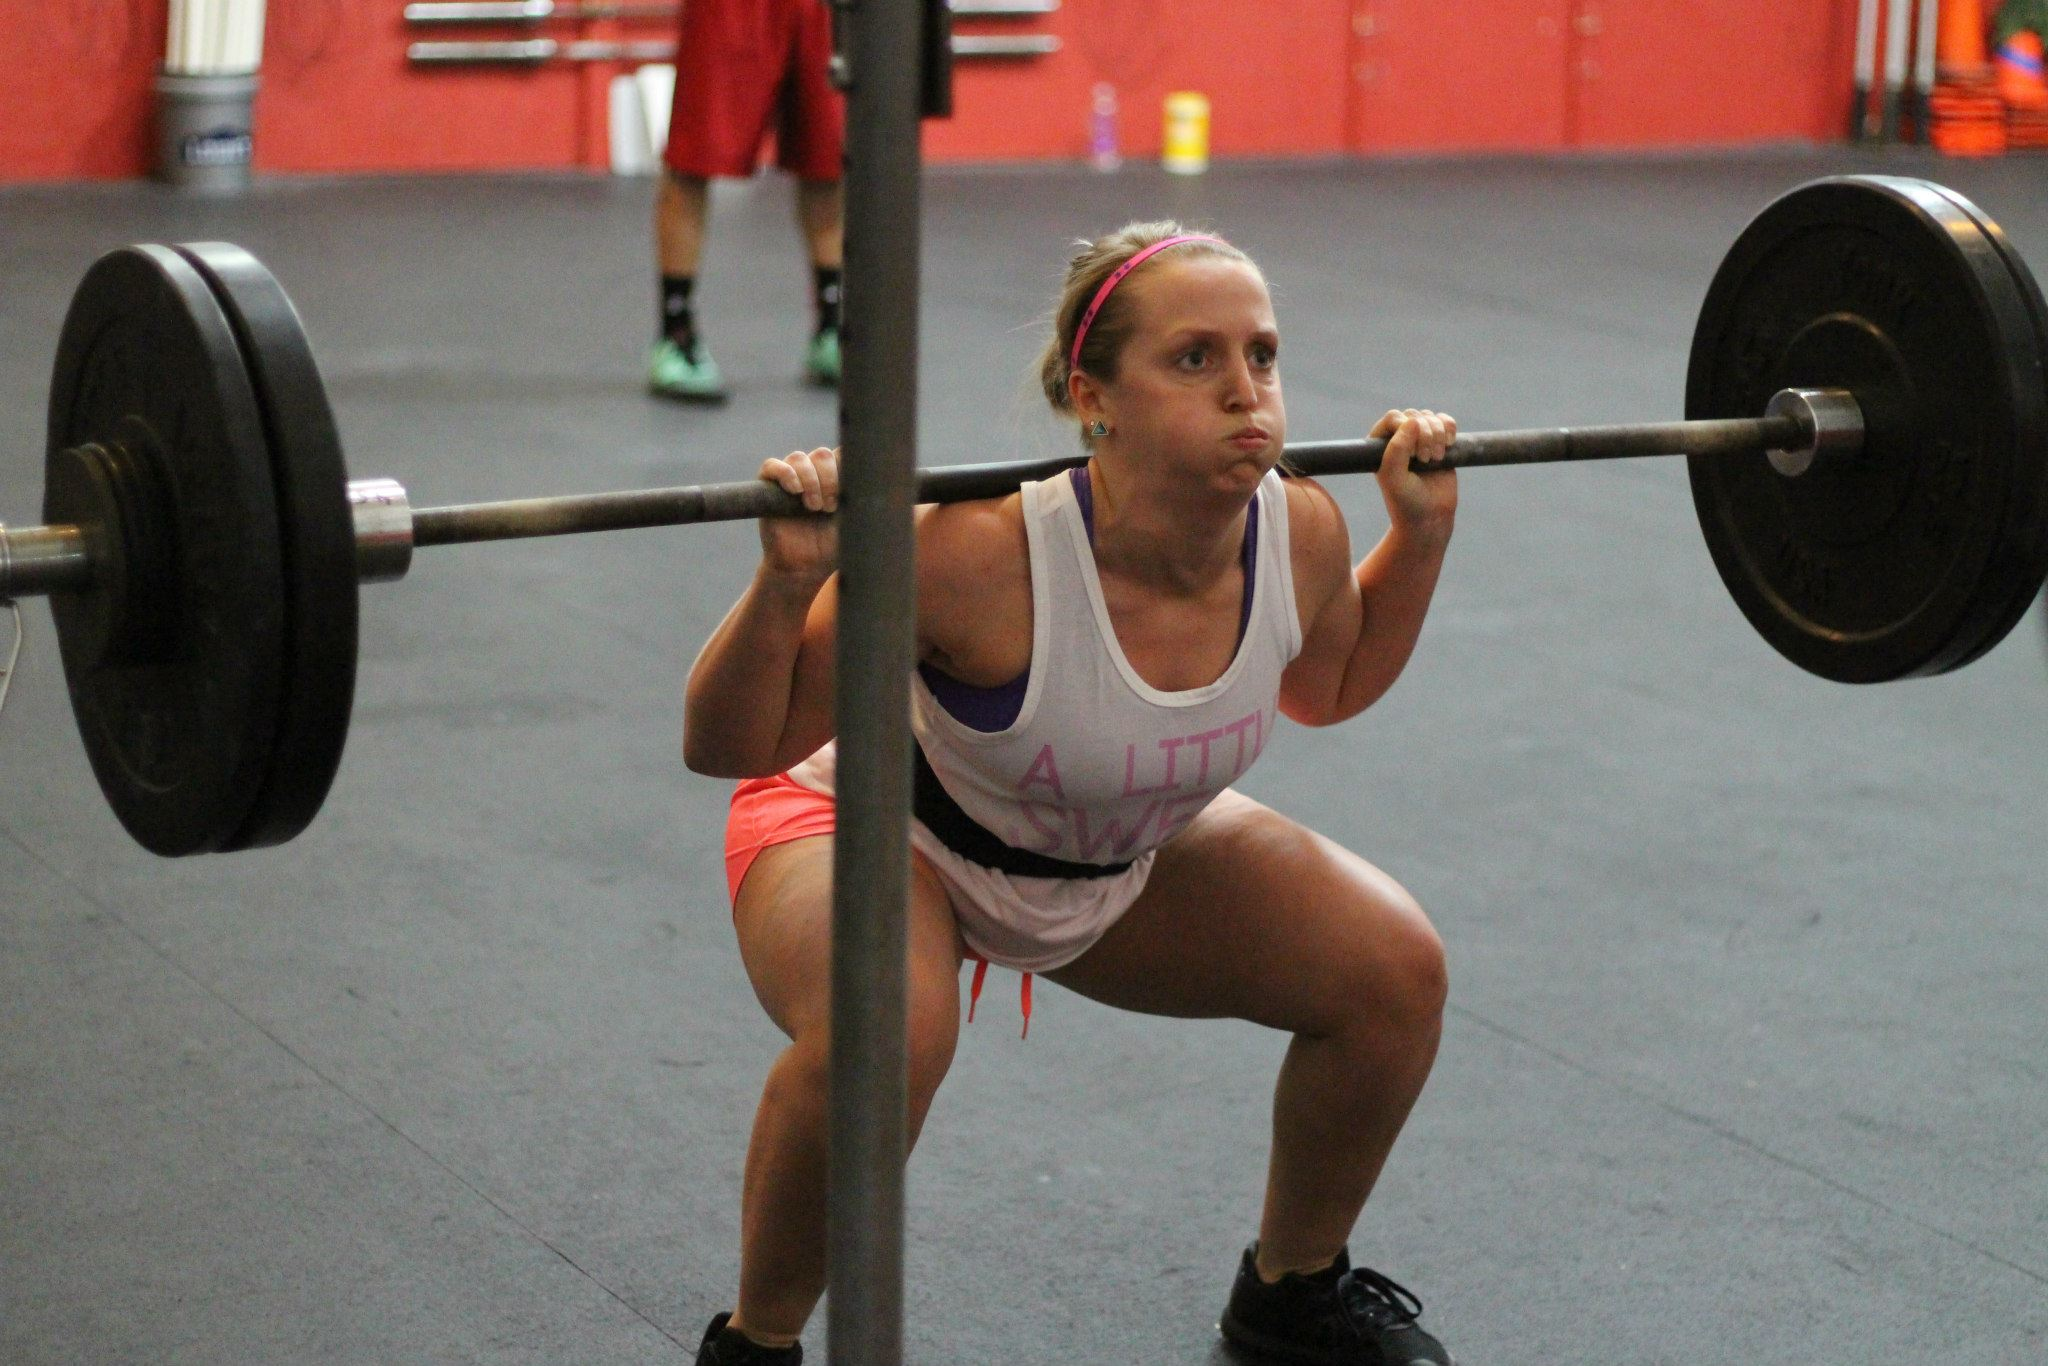 Thursday, August 9 WOD